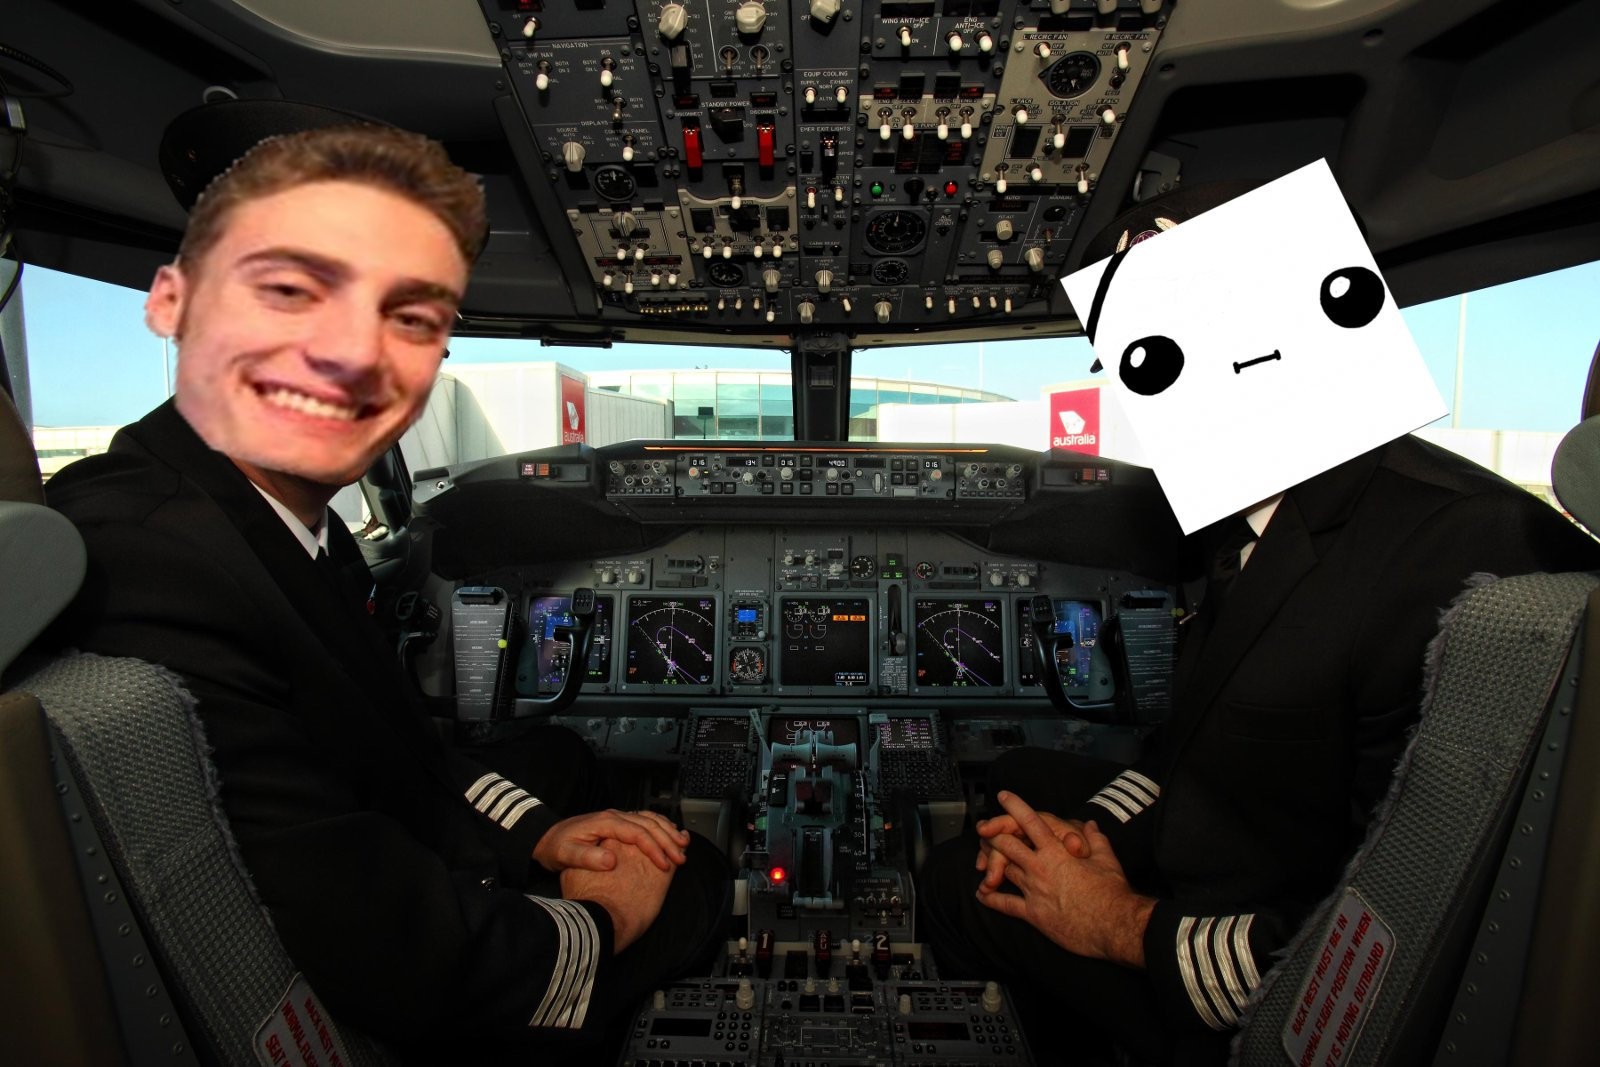 Yo where tf my pilots taking me